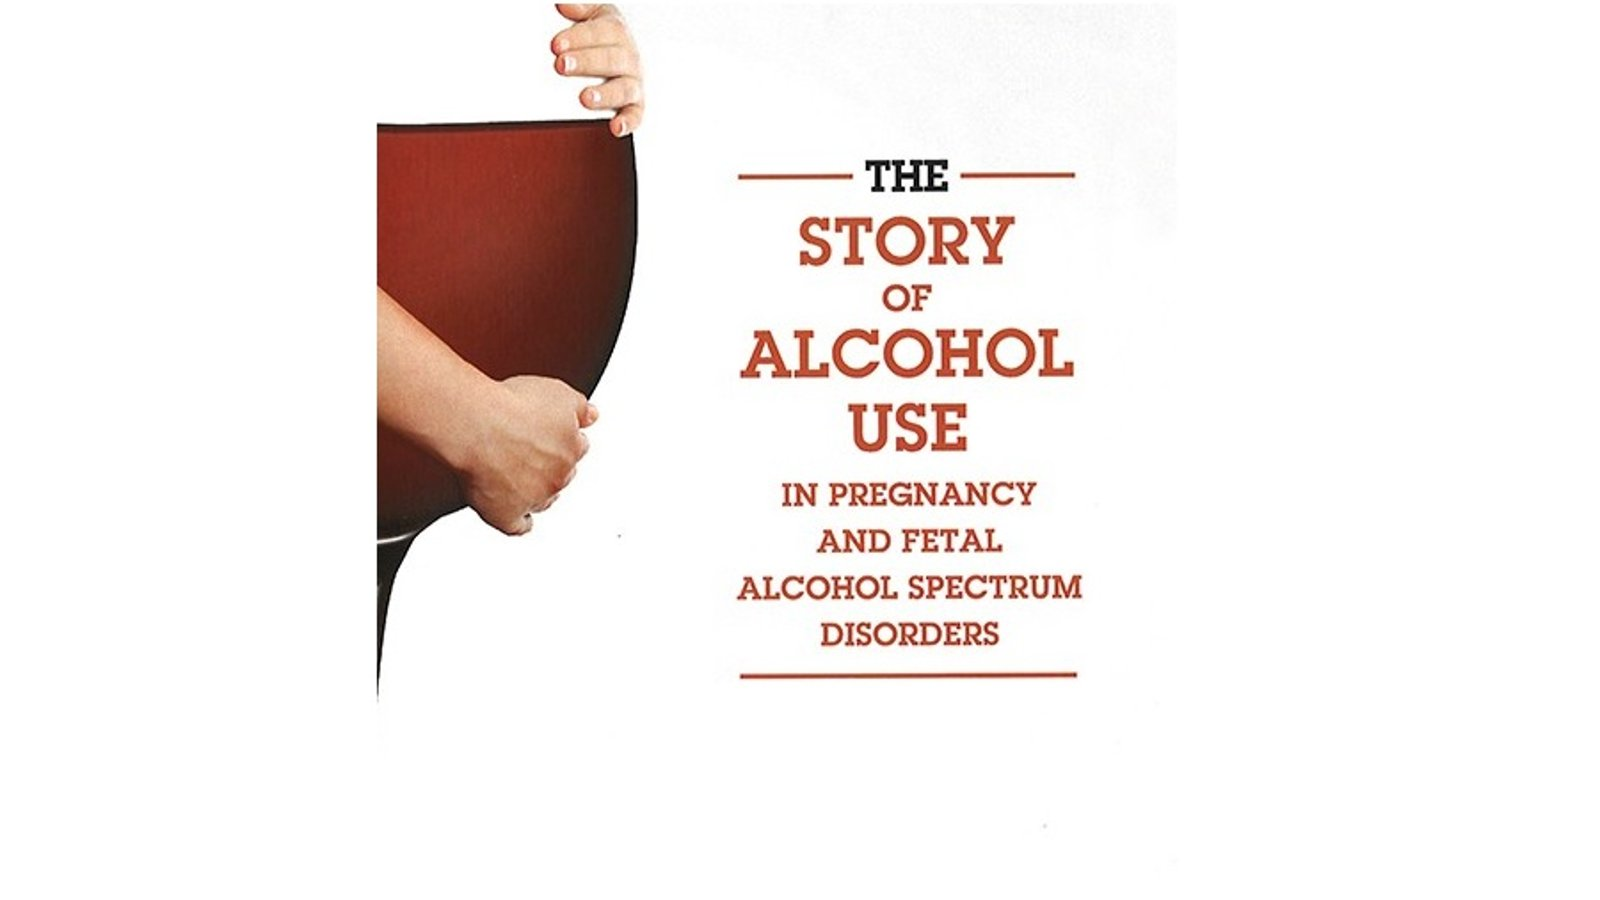 The Story of Alcohol Use In Pregnancy and Fetal Alcohol Spectrum Disorders